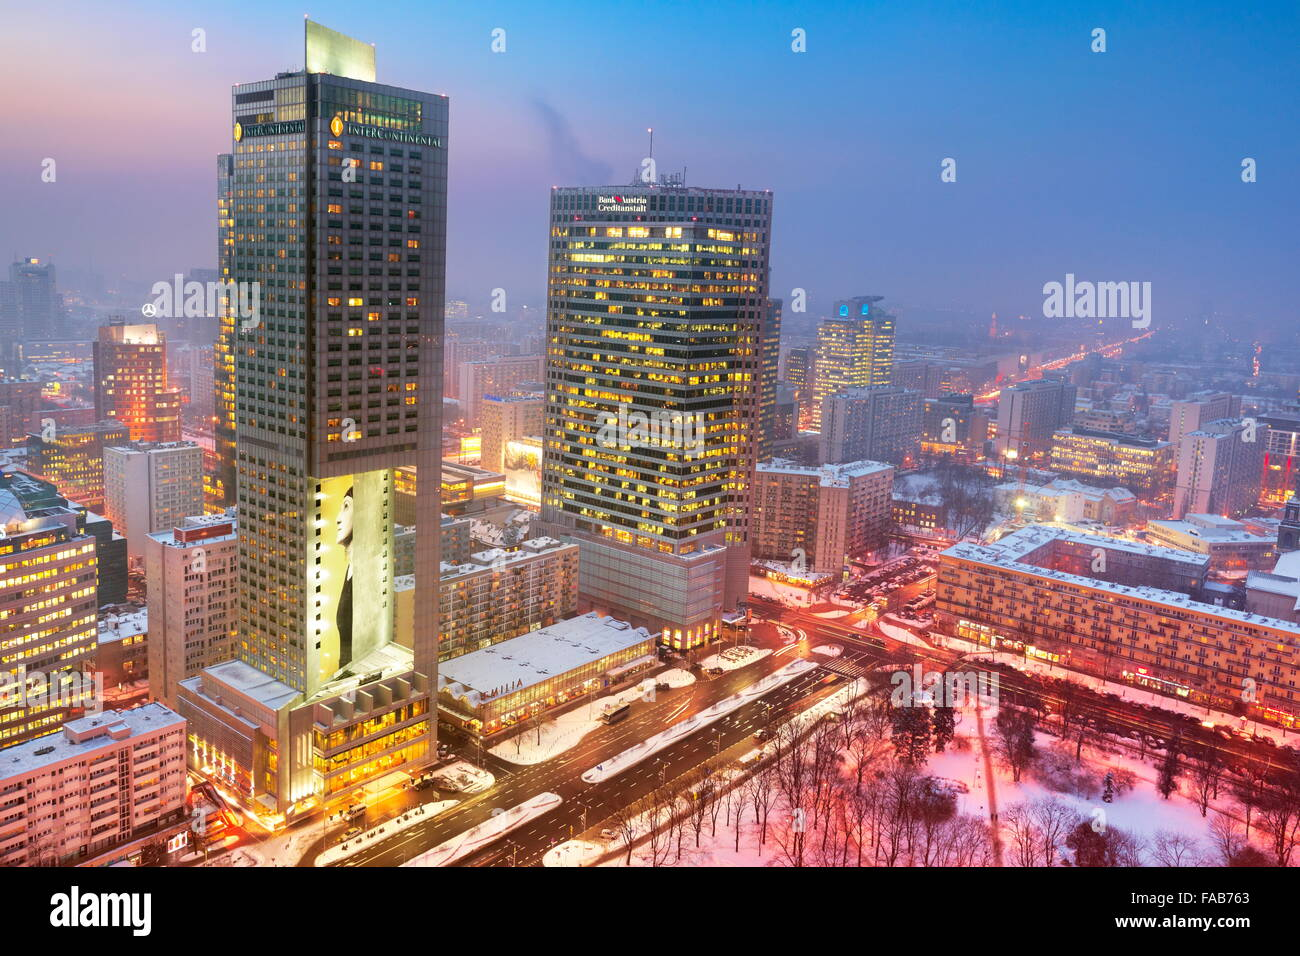 Warsaw skyline - view to the commercial district,  Poland - Stock Image